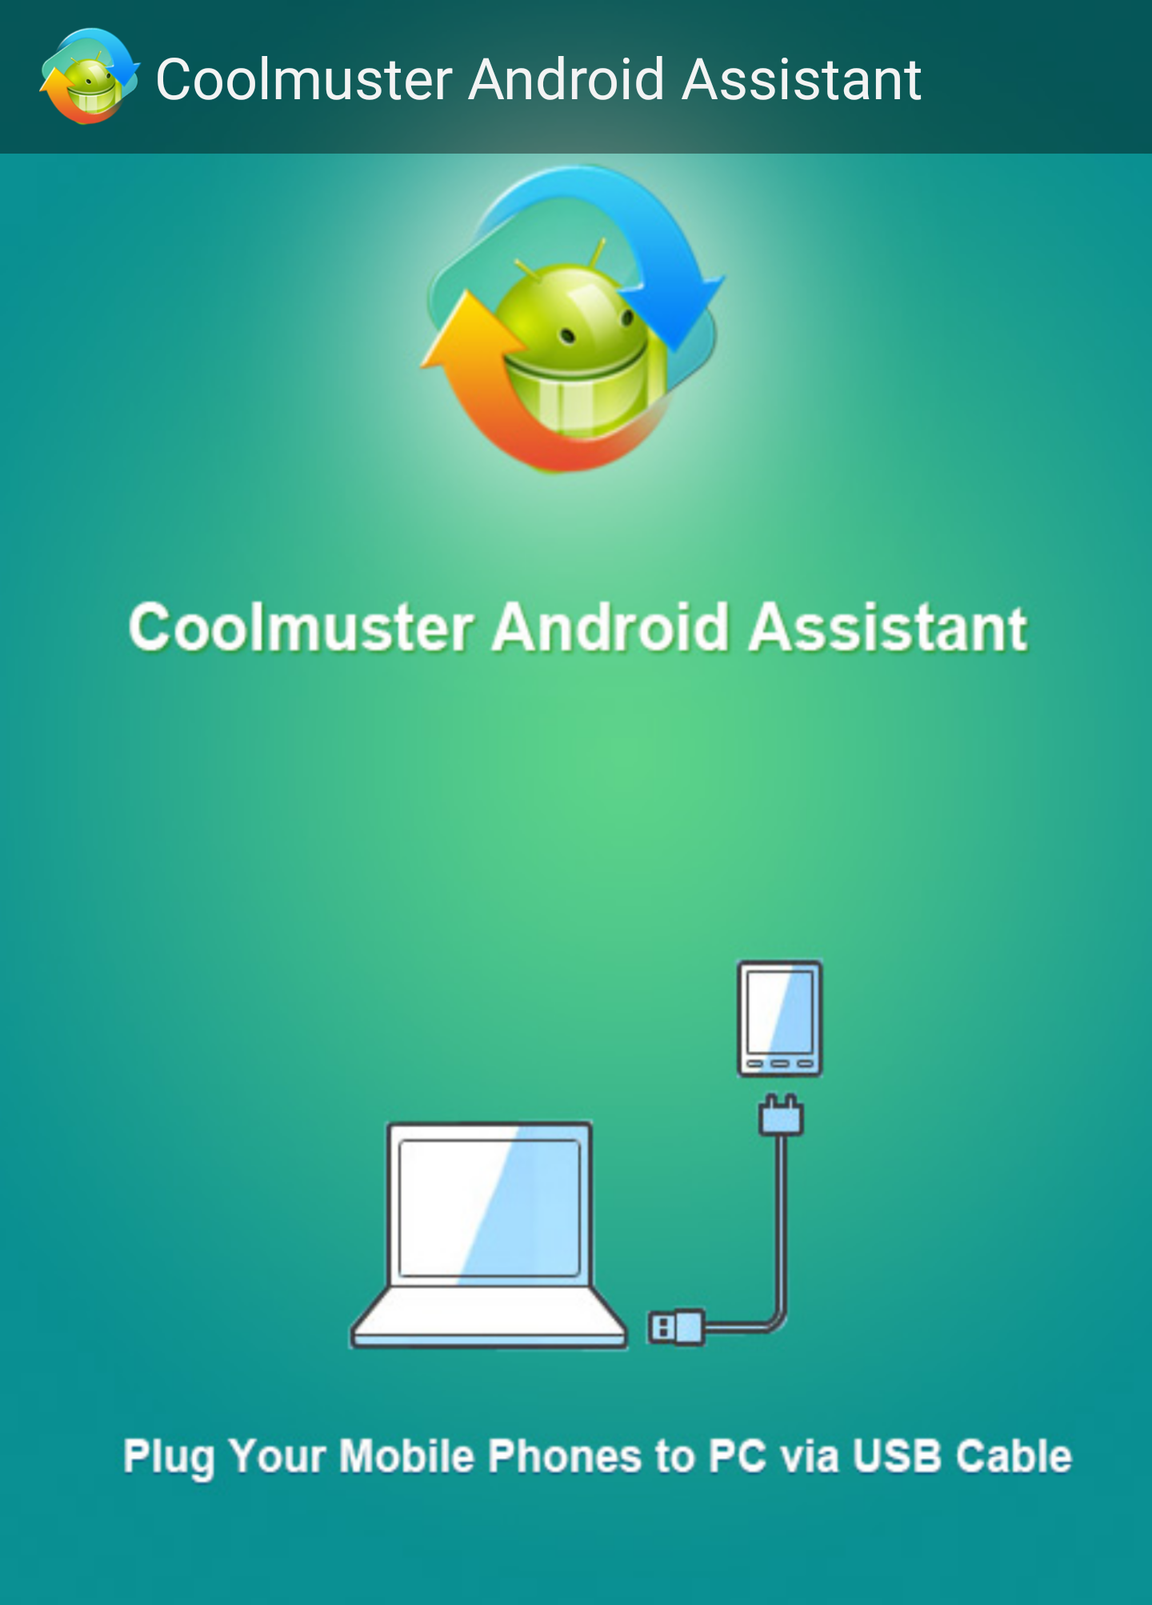 coolmuster android assistant, display on android phone lg v20